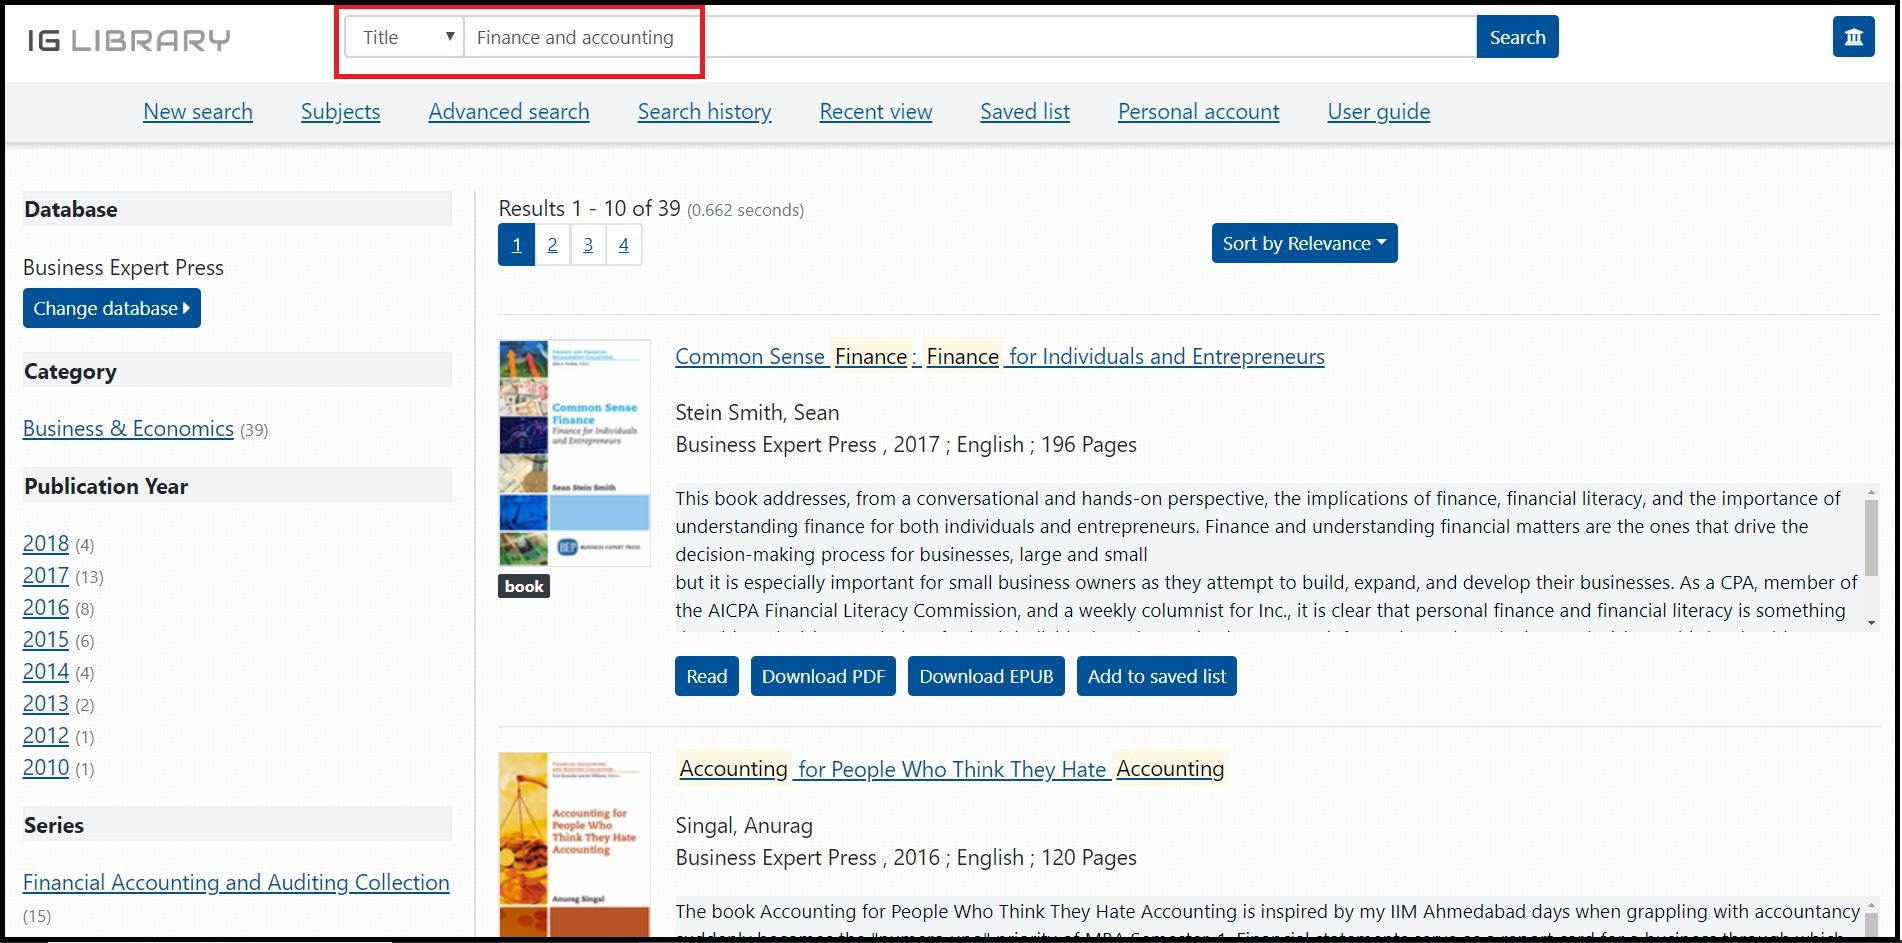 Open Business Expert Press e-Books (2009-2018) then Search for Required Subjects